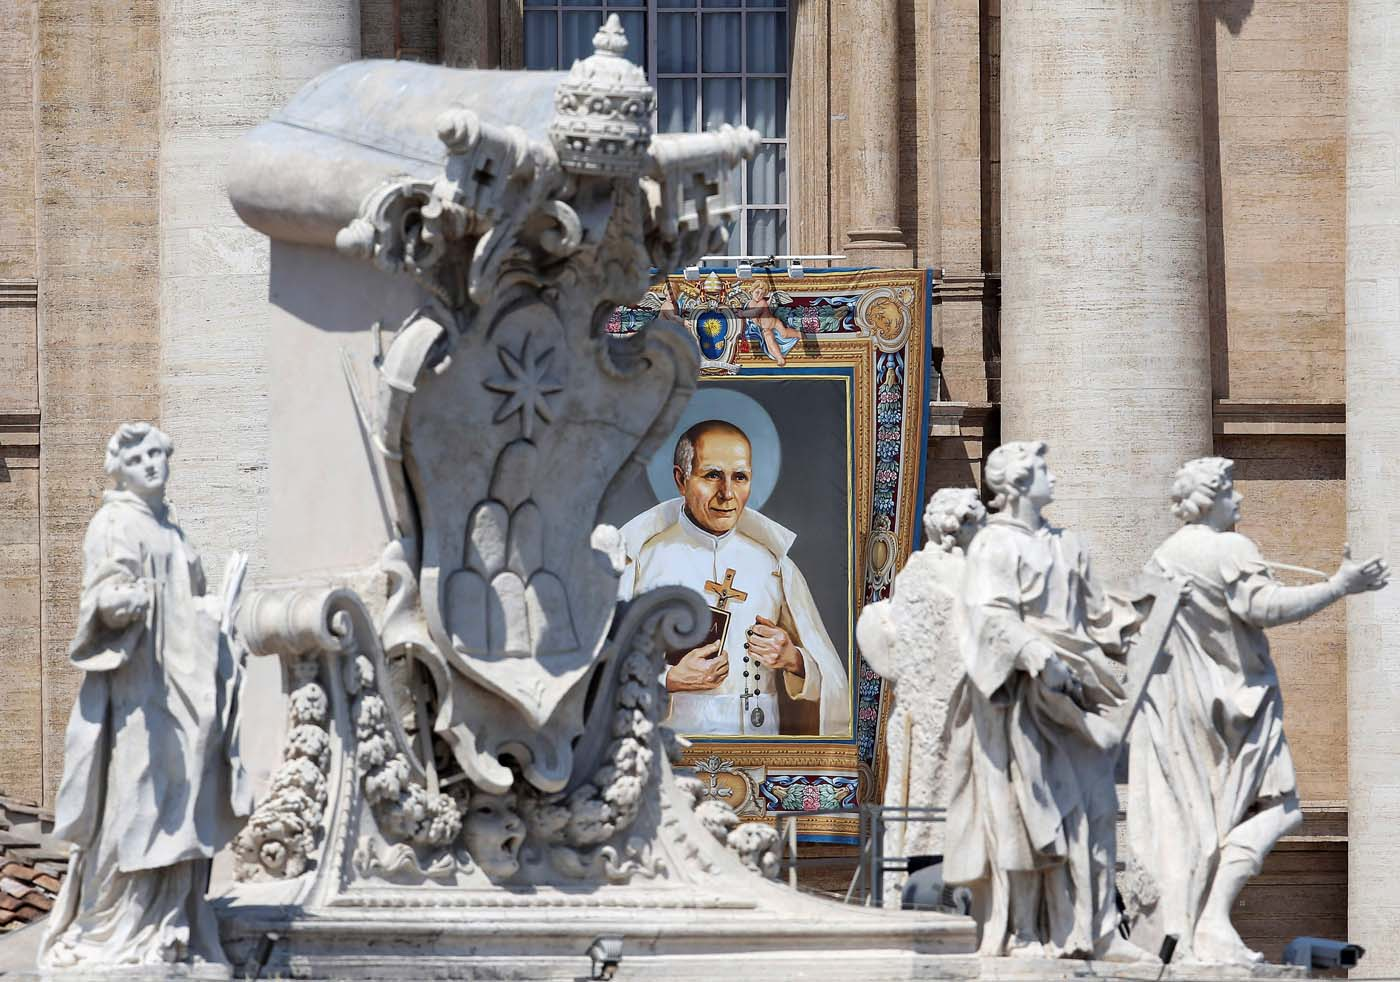 2016-06-05T100422Z_1817804667_S1AETIDEWCAA_RTRMADP_3_POPE-CANONISATION